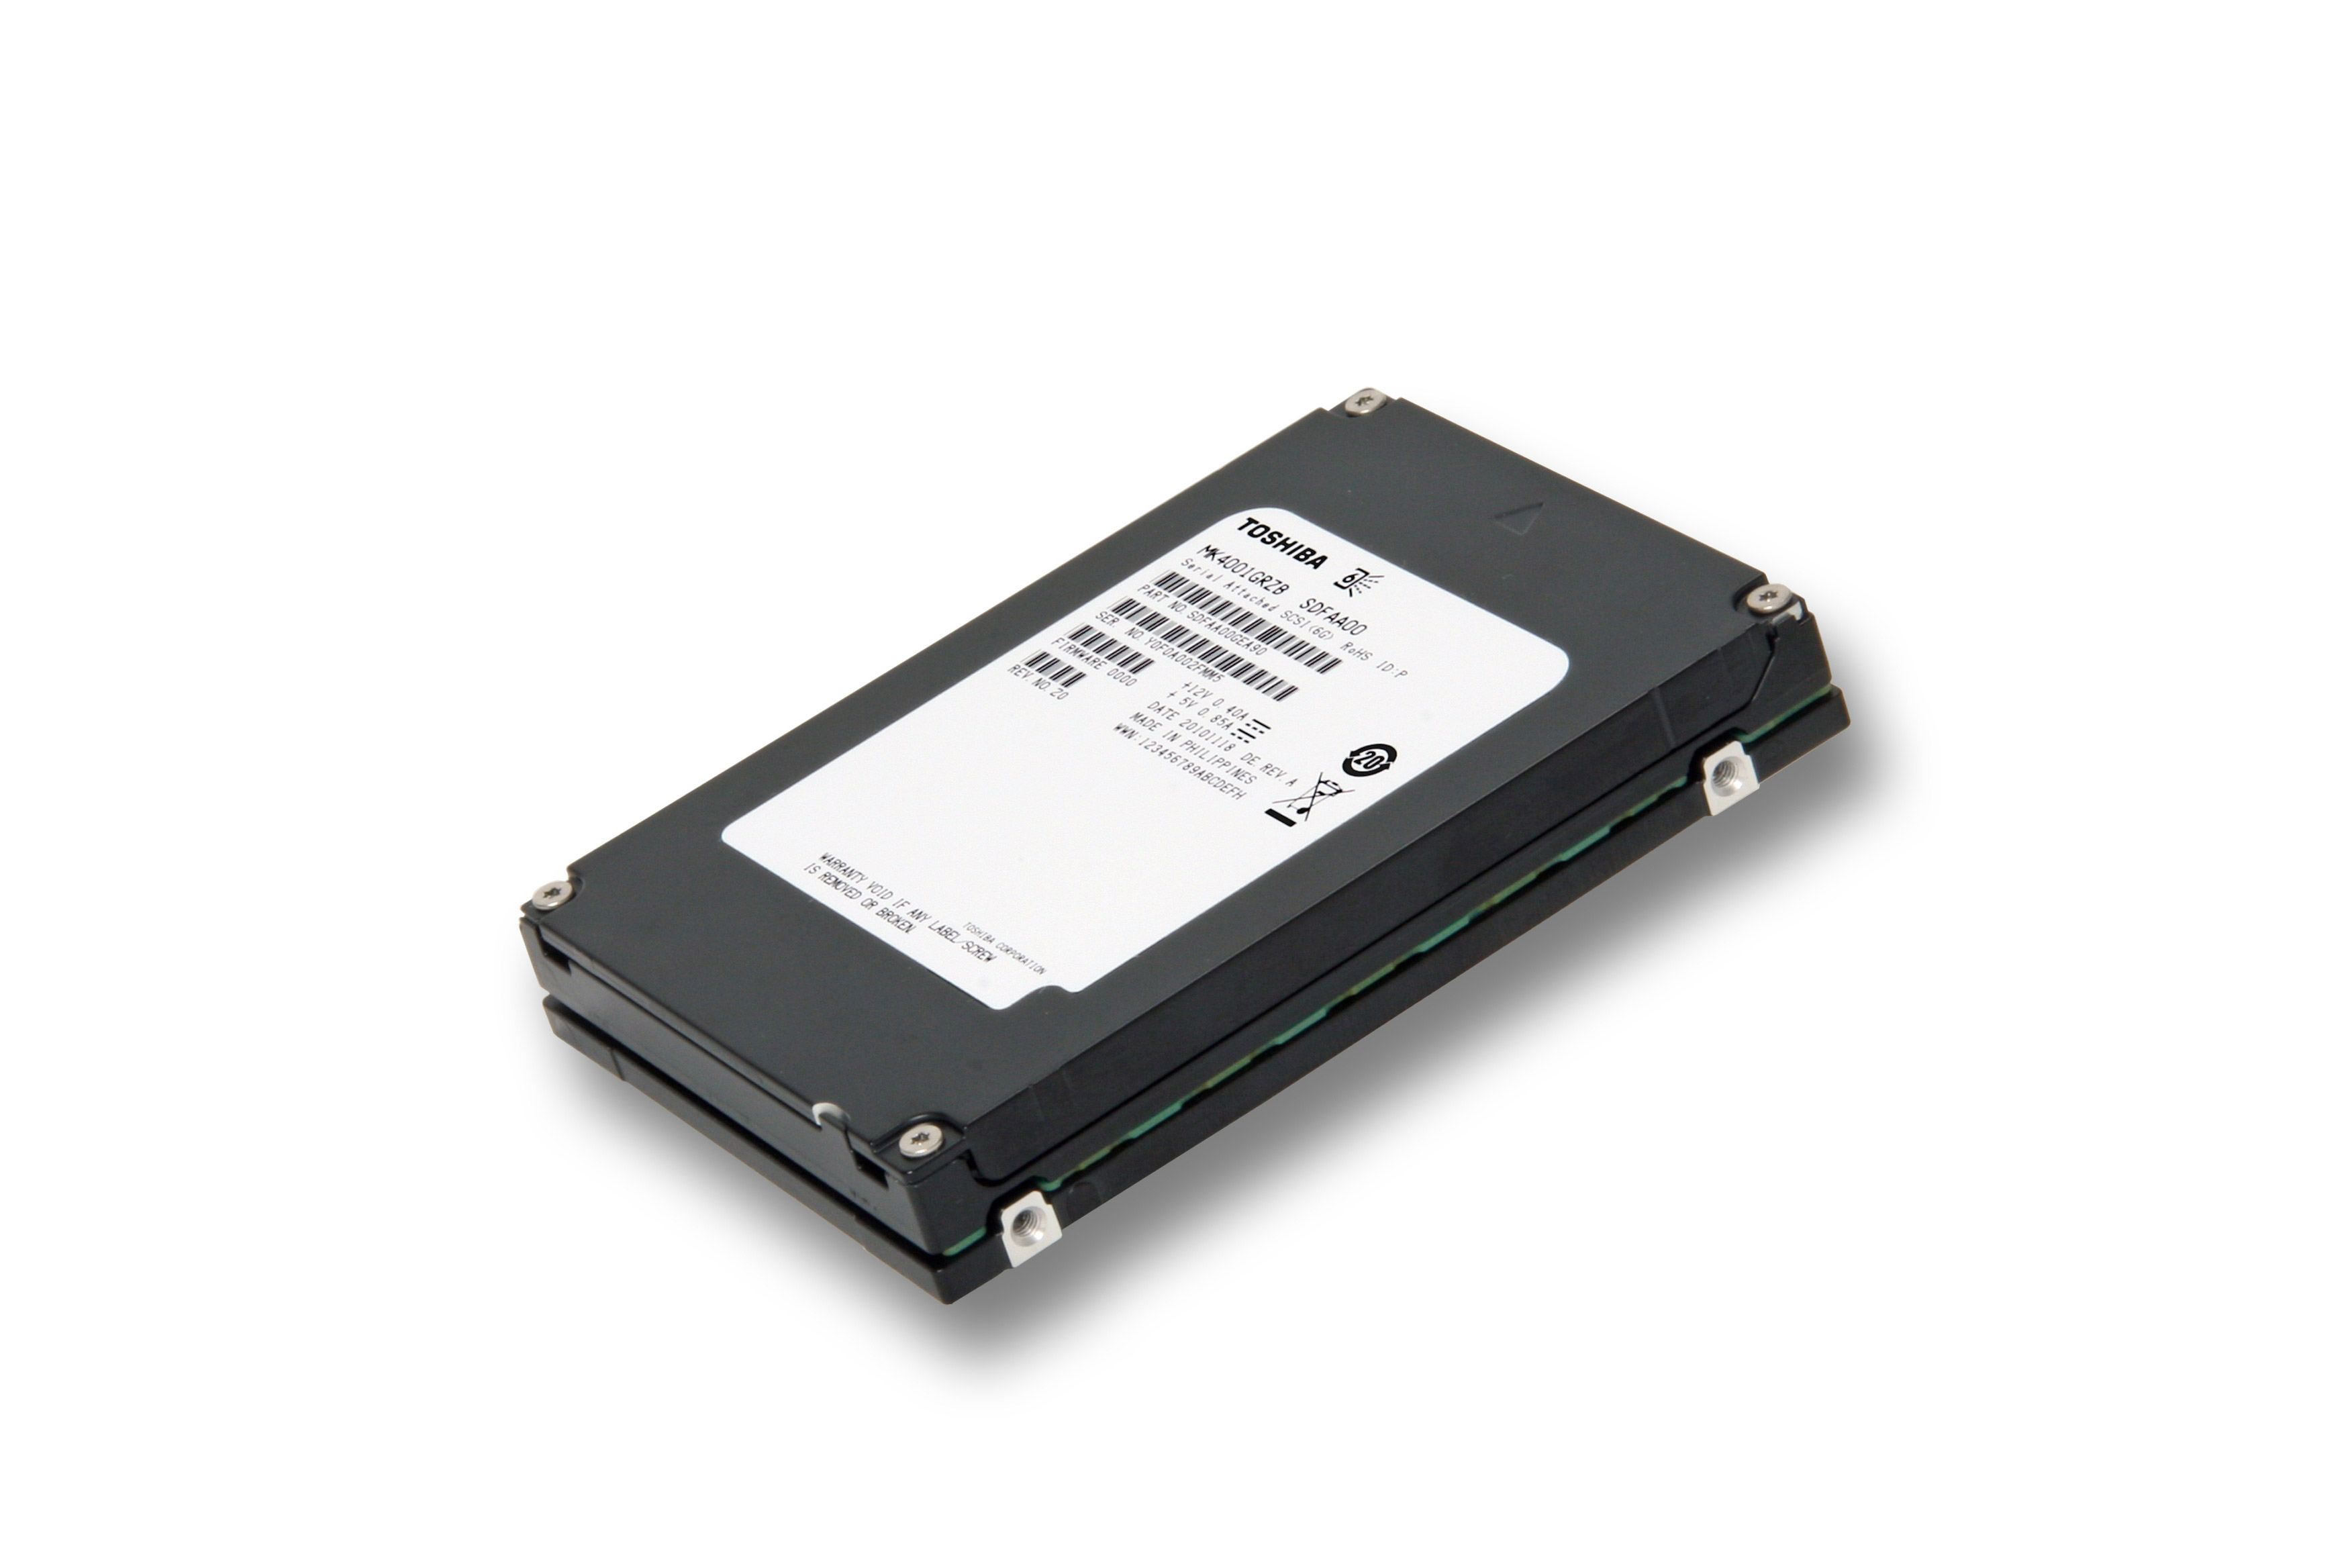 Toshiba intros new enterprise-oriented SSDs and HDDs